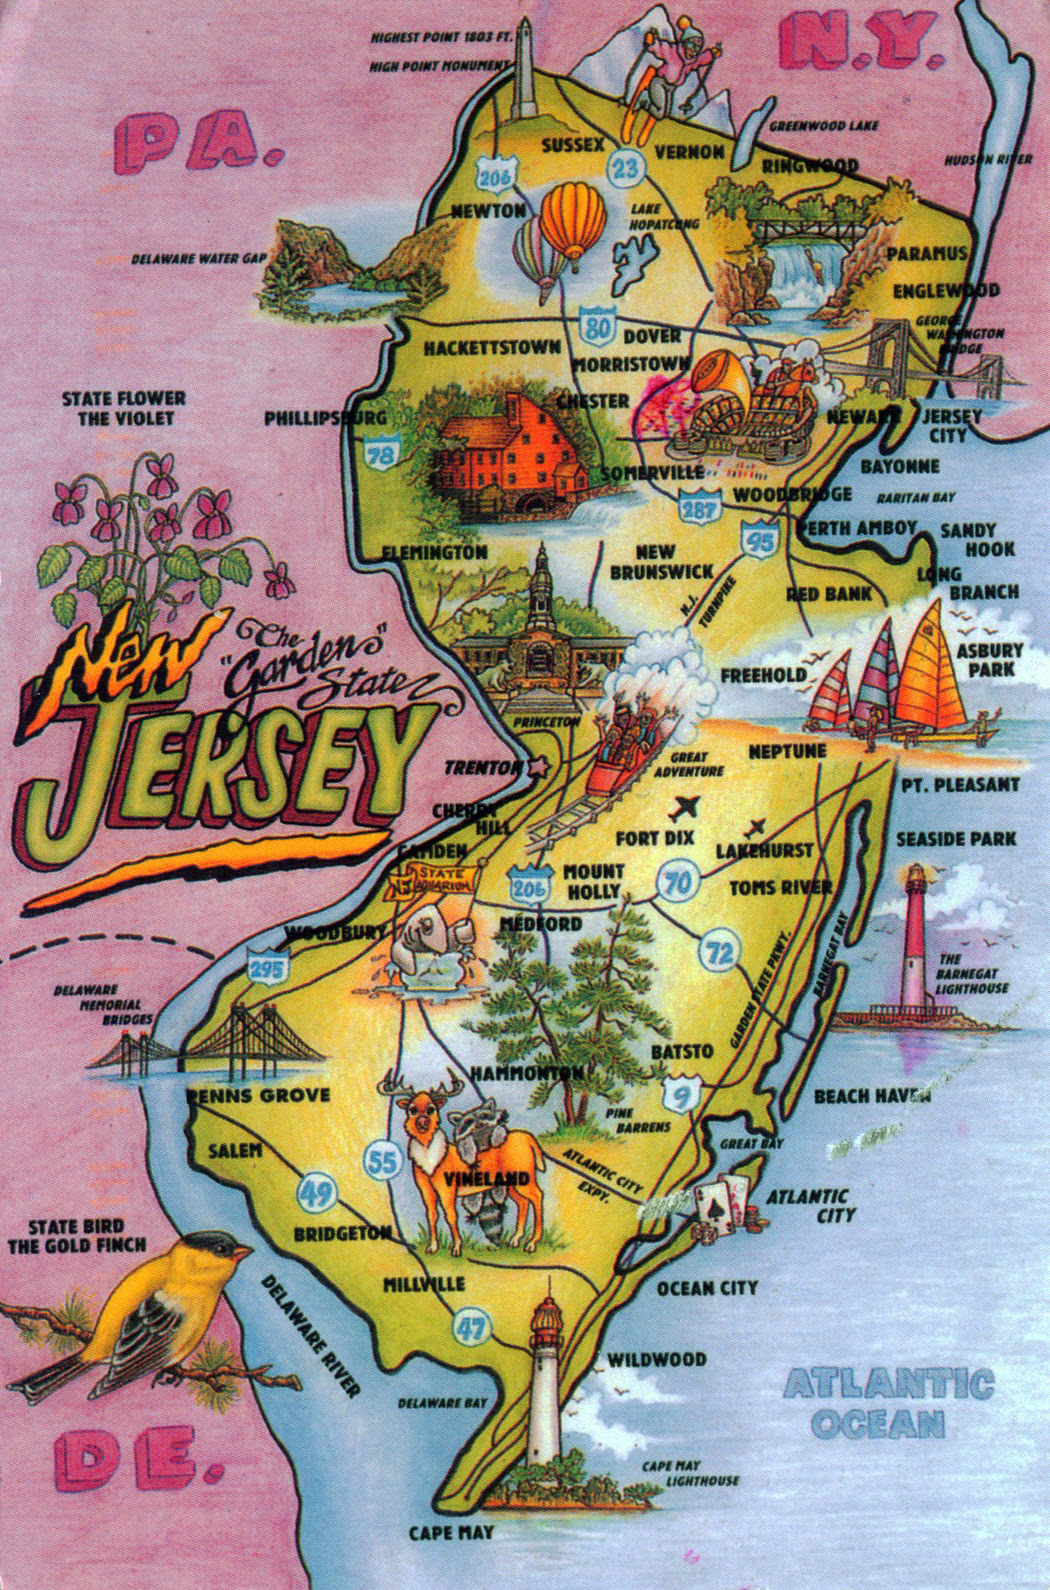 map of new jersey   America Maps   Map Pictures moreover New Jersey Map   Geography of New Jersey  Map of New Jersey moreover New Jersey Map   Infoplease together with File New Jersey Potion Map     Wikimedia  mons further Old Map of New Jersey – A Great Framed Map That's Ready to Hang in addition Detailed tourist illustrated map of New Jersey state   Vidiani furthermore  moreover New Jersey highway map in addition New Jersey Road Map   NJ Road Map   NJ Highway Map also Map of New Jersey furthermore New Jersey Road Map  Highways in New Jersey as well New Jersey State Maps   USA   Maps of New Jersey  NJ further NJ Counties   Munilties   New Jersey Information   Research as well  likewise New Jersey Outline Maps and Map Links likewise Large New Jersey State Maps for Free Download and Print   High. on maps of new jersey